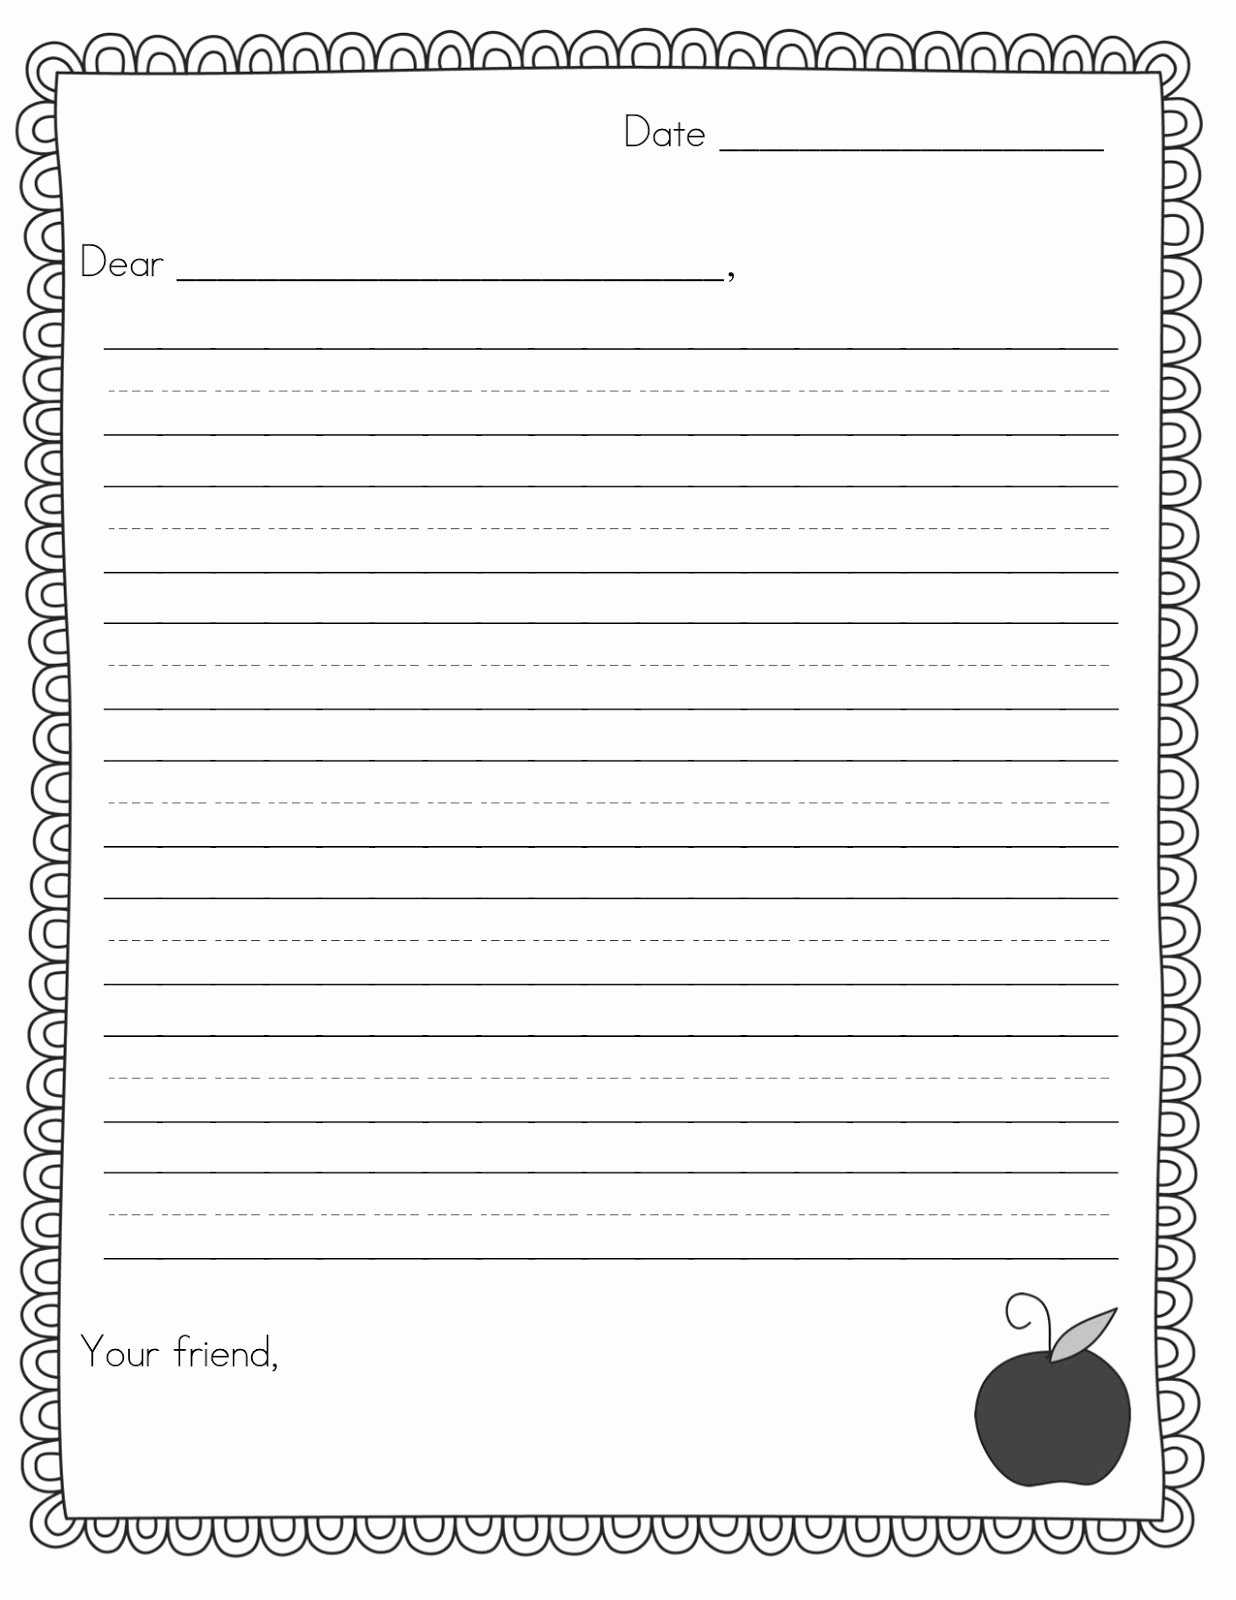 Pen Pal Letter Template Inspirational Friendly Letter Template for 2nd Grade